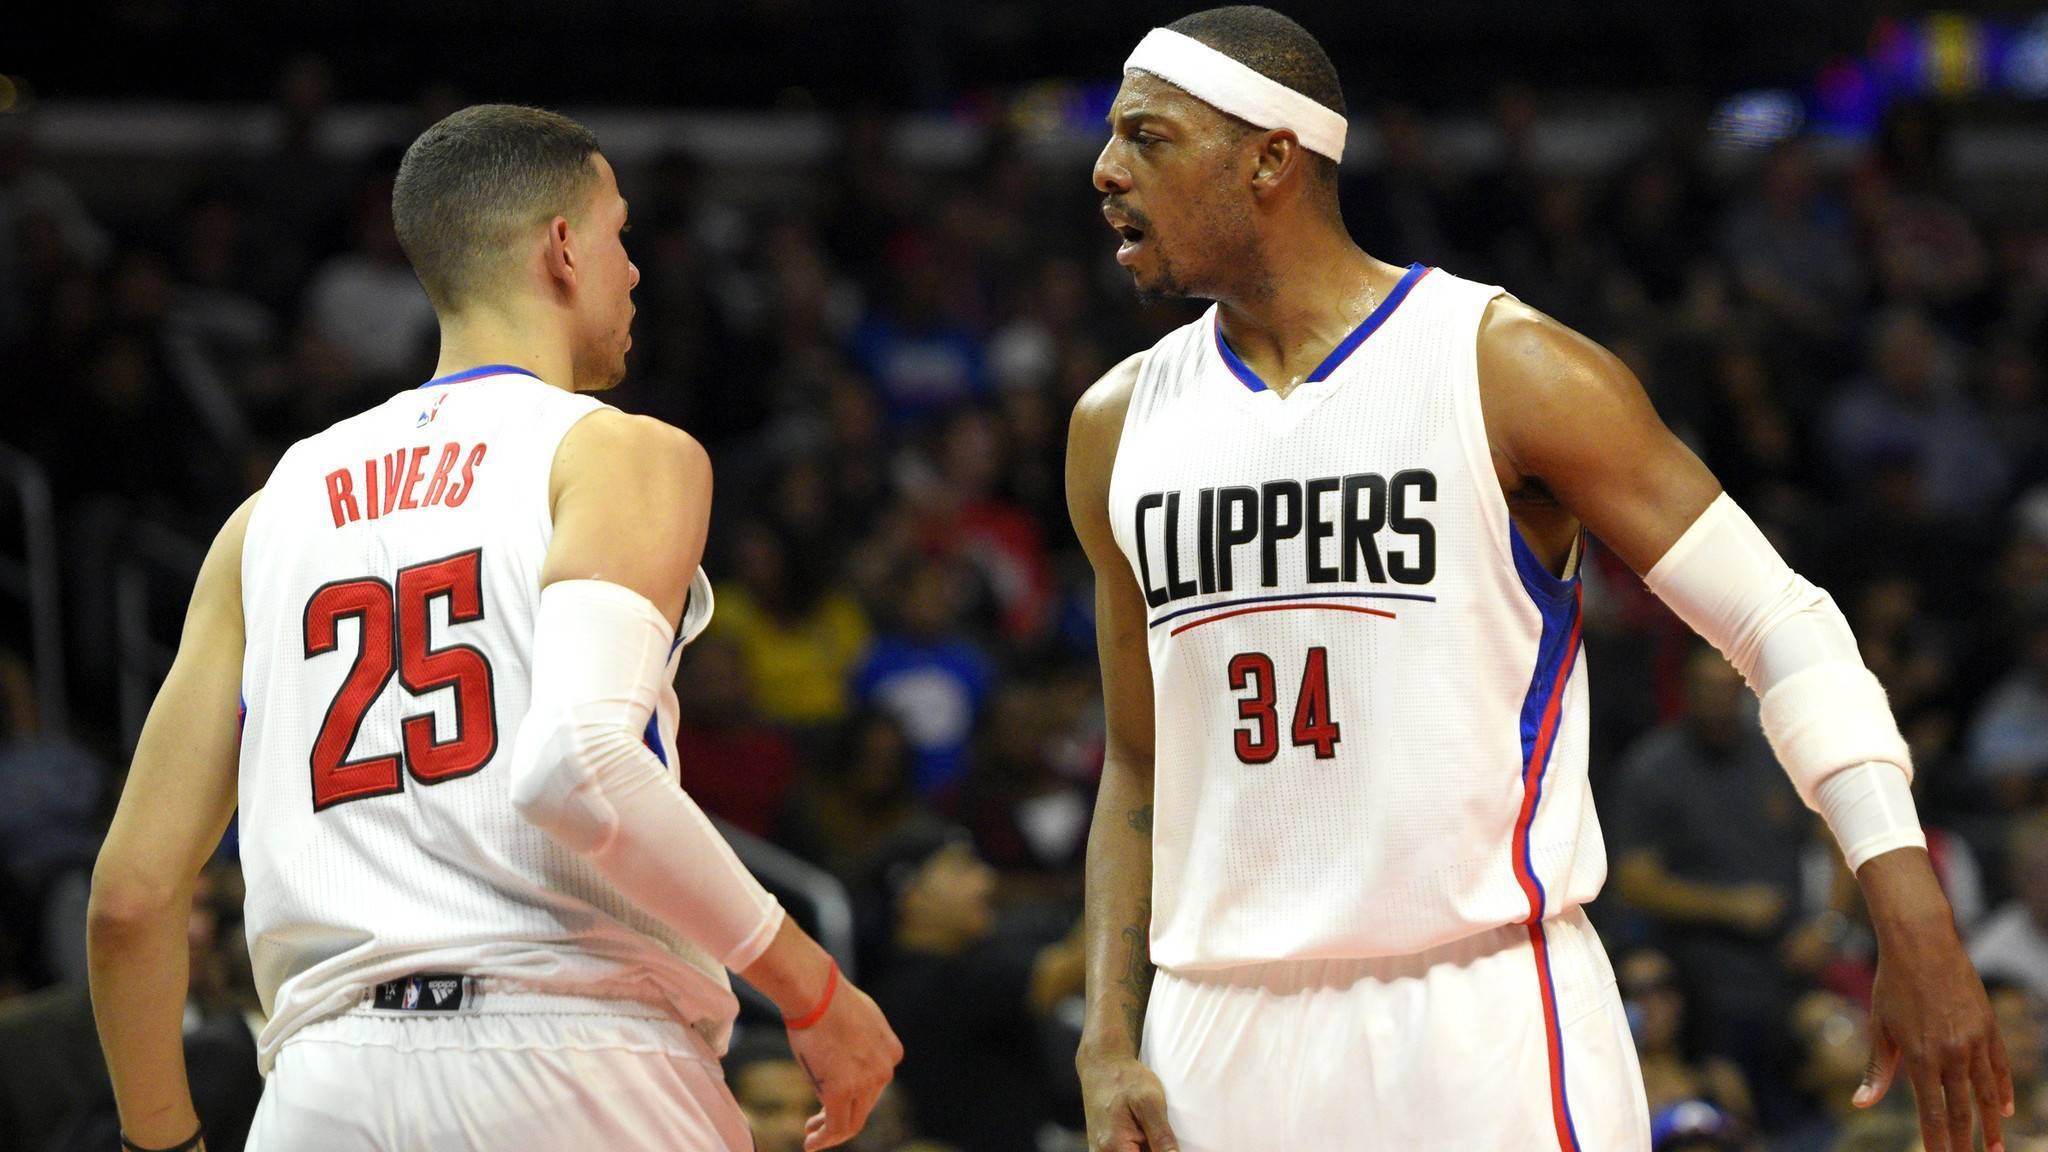 la-sp-clippers-paul-pierce-20151024.jpg